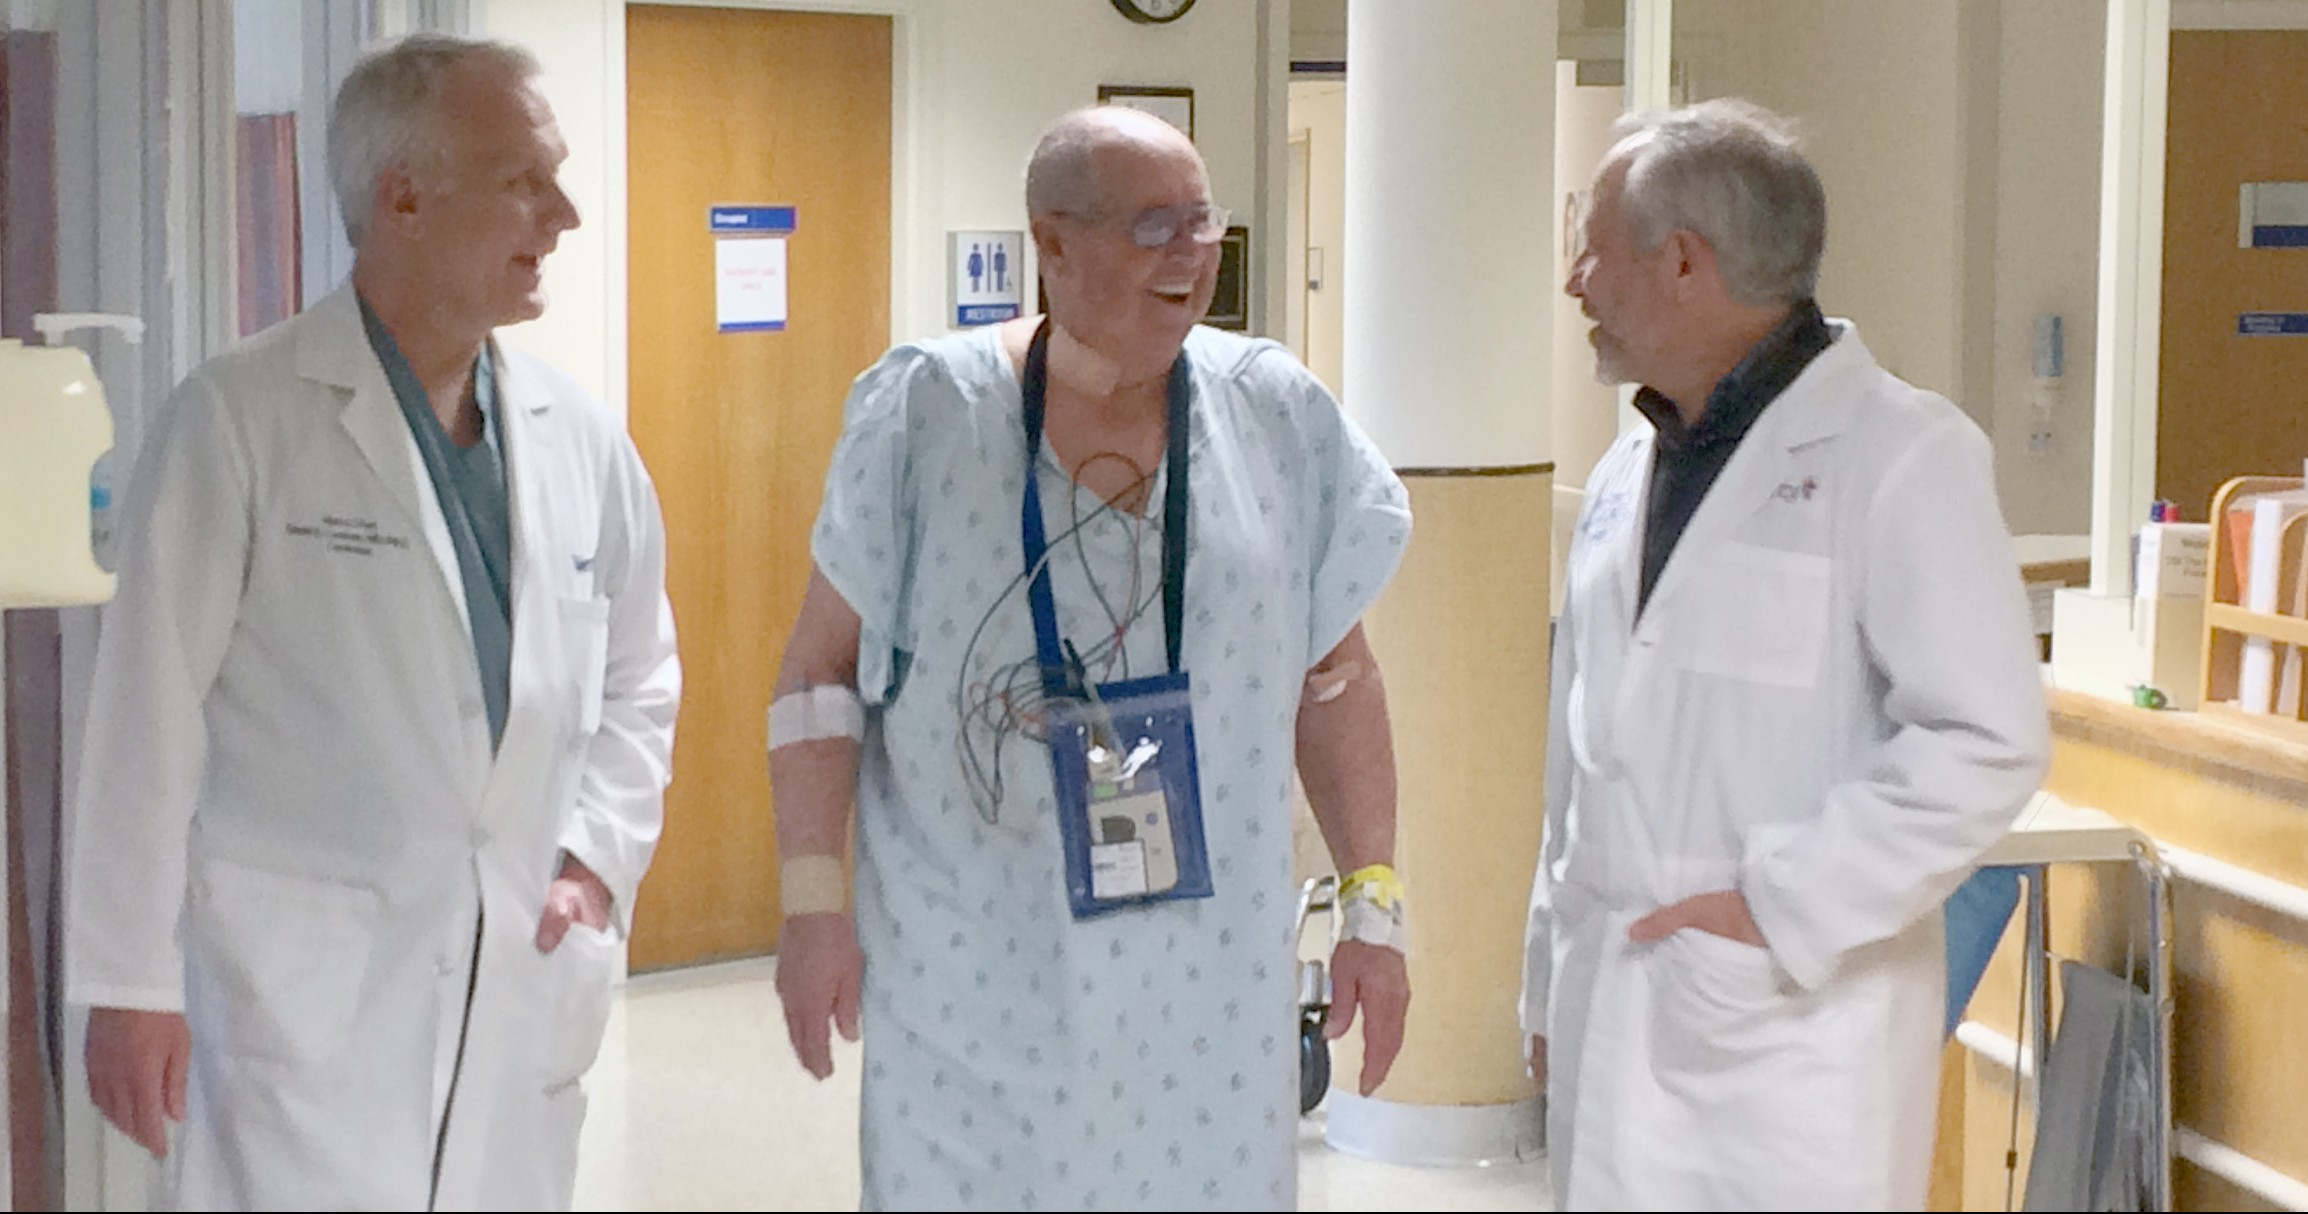 Alvin Hawkins walks the halls of Mercy Hospital Springfield with Dr. David Cochran (l) and Dr. Robert Merritt (r) the day after his TAVR procedure.